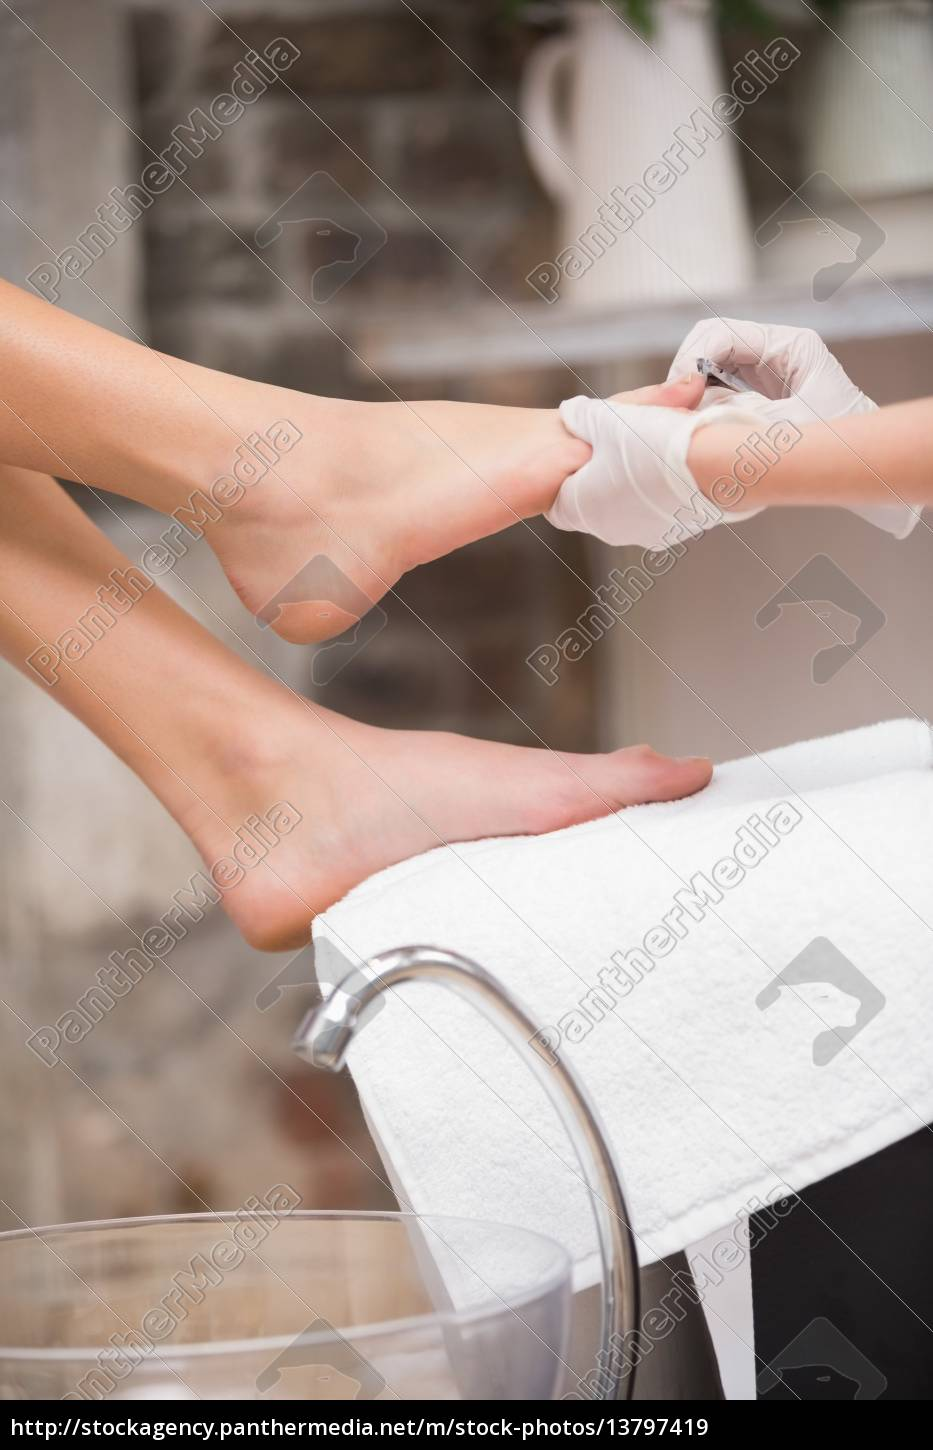 woman, getting, a, pedicure, from, beautician - 13797419